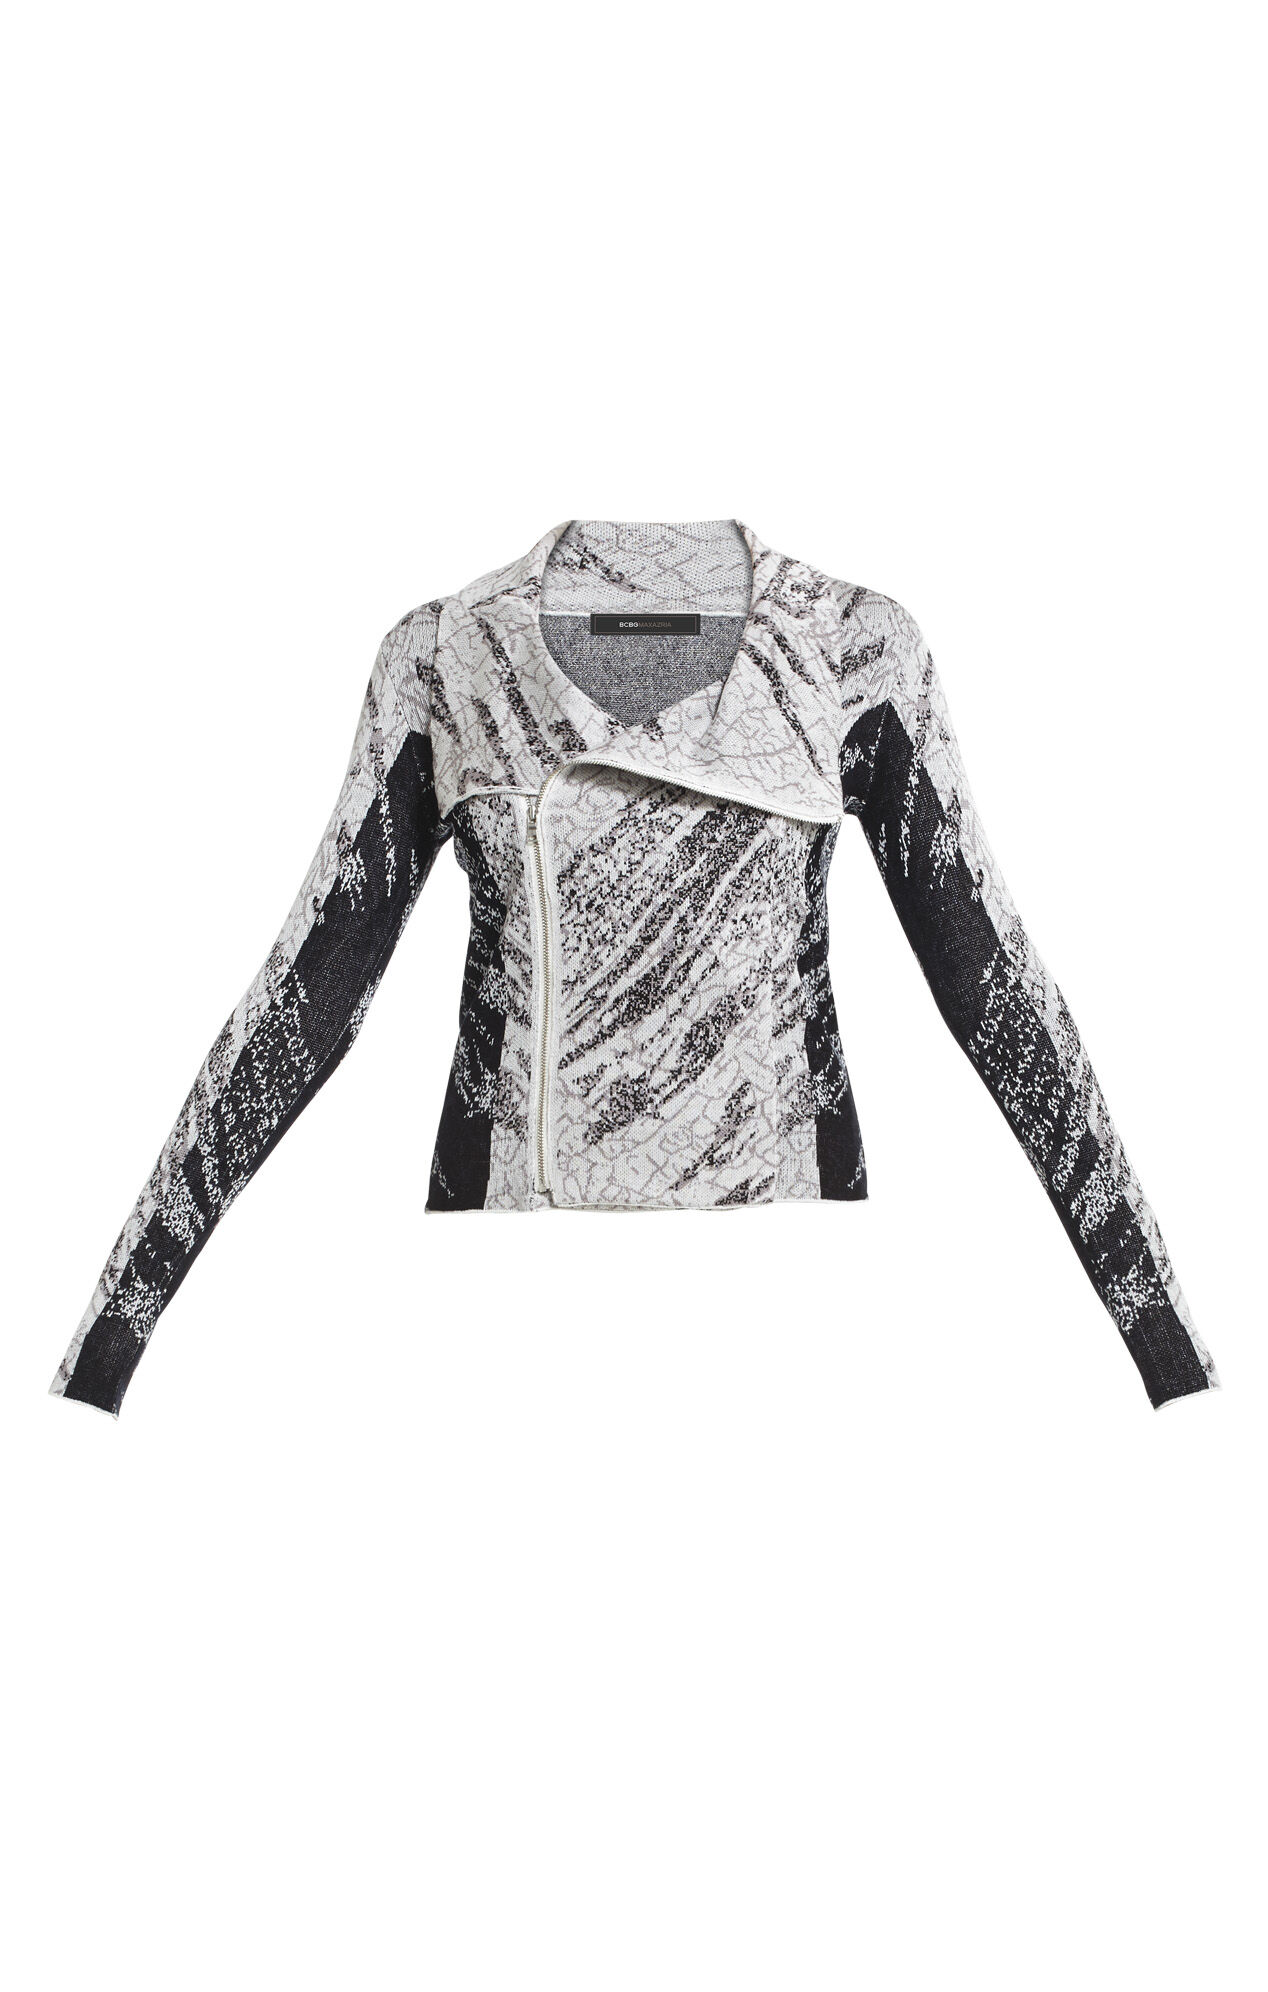 Eva Crackled-Jacquard Moto Jacket